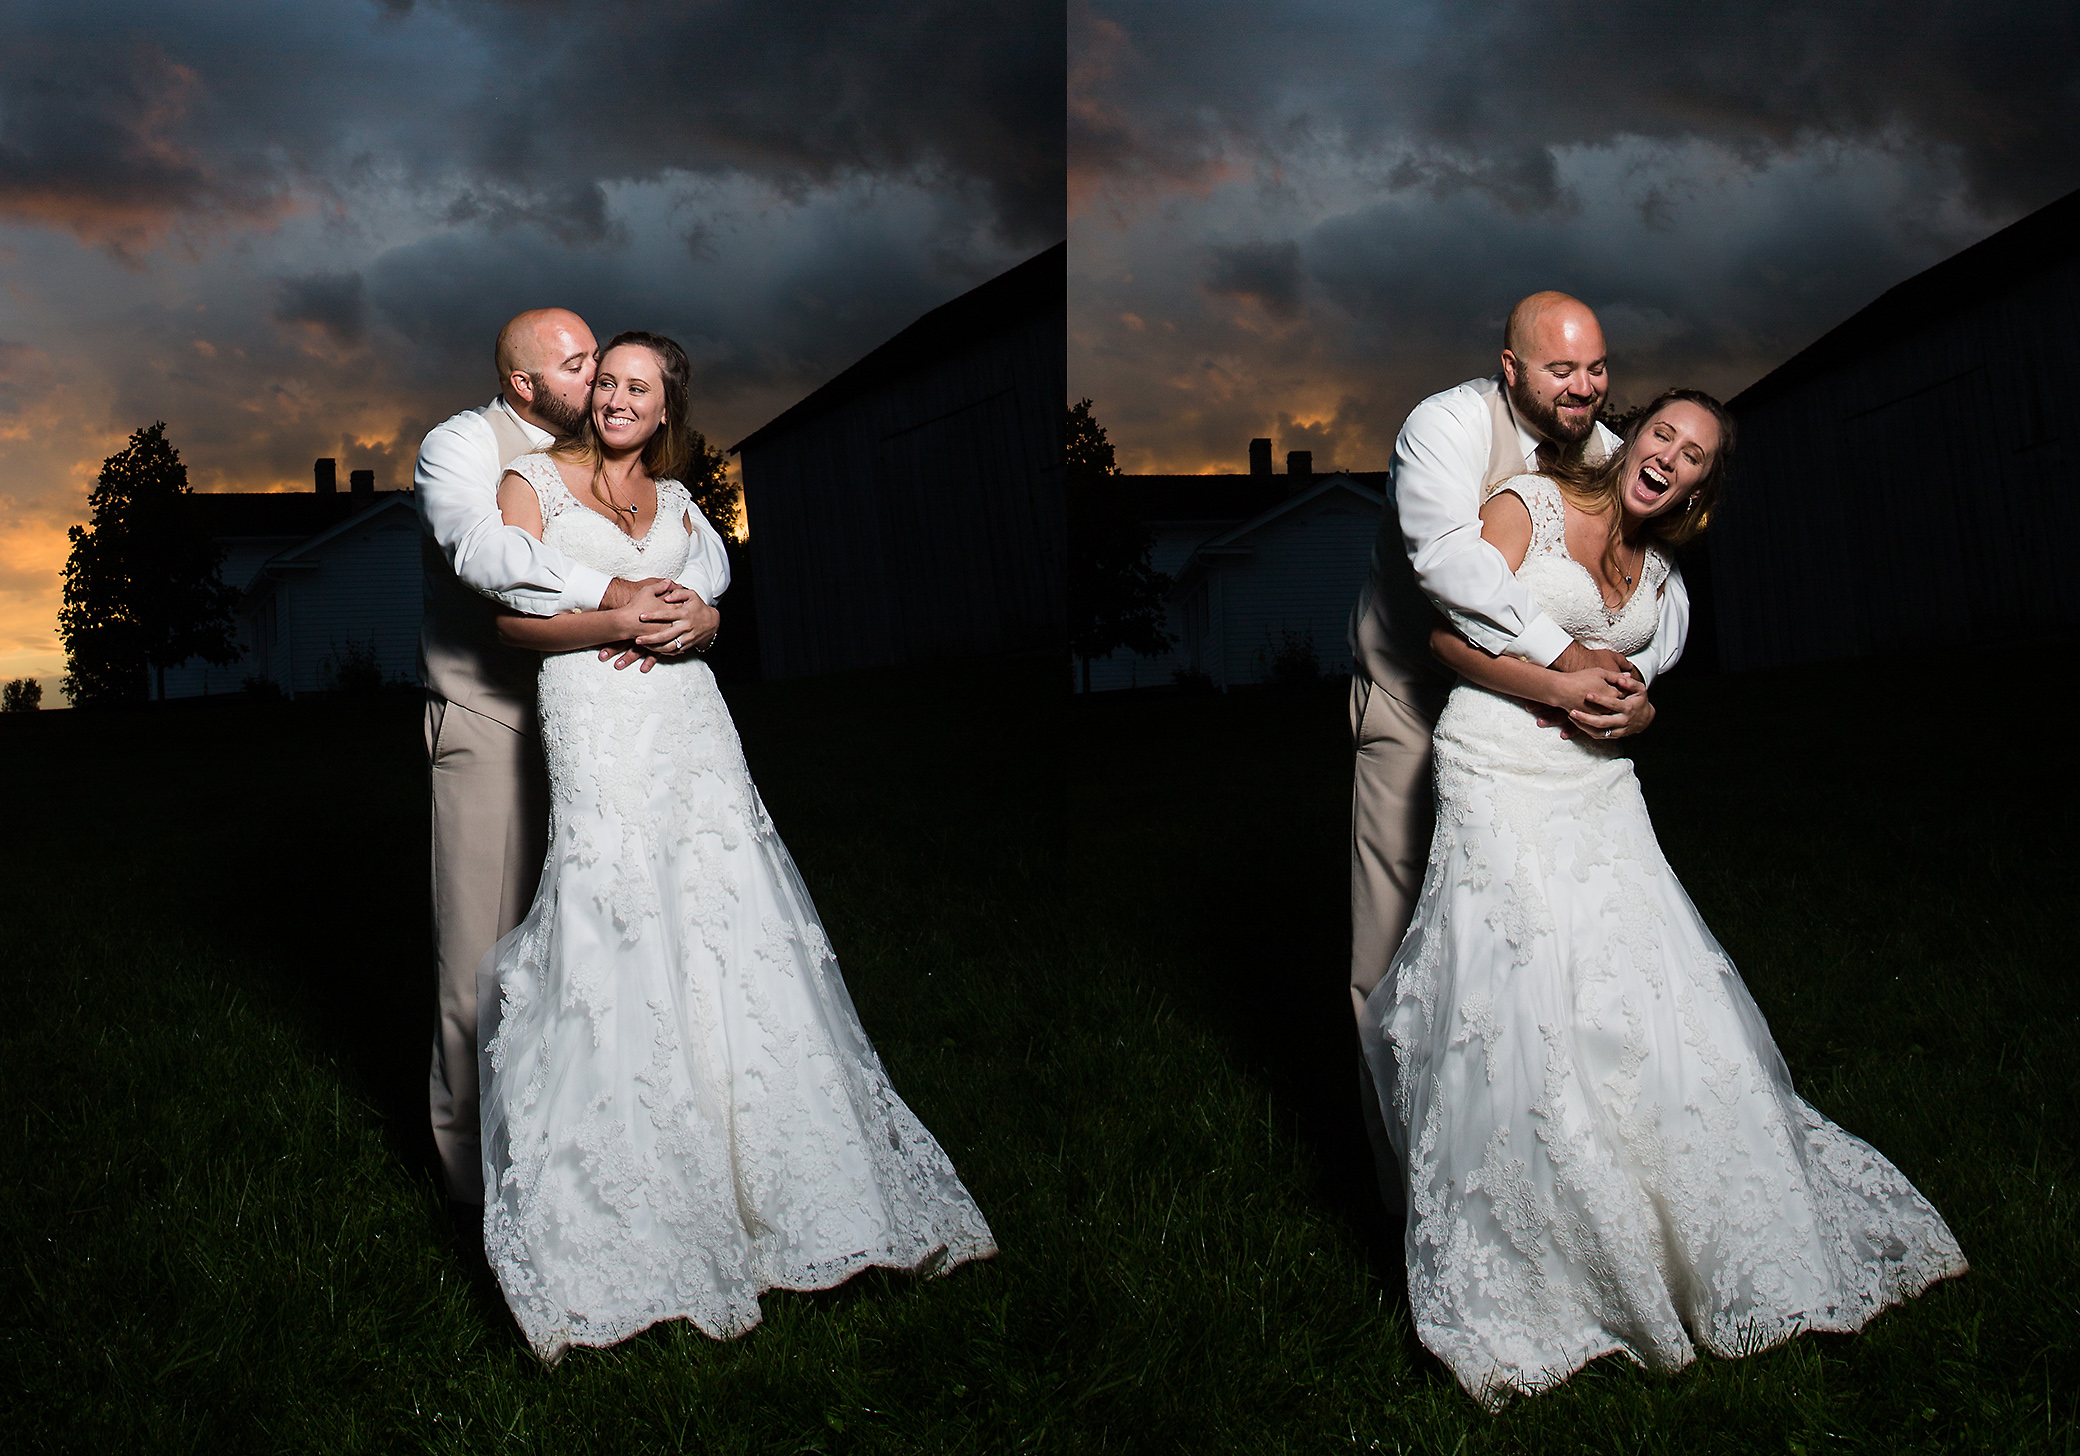 20170903_98913-fun-couple-bride-groom-laughing-rochester-ny.jpg